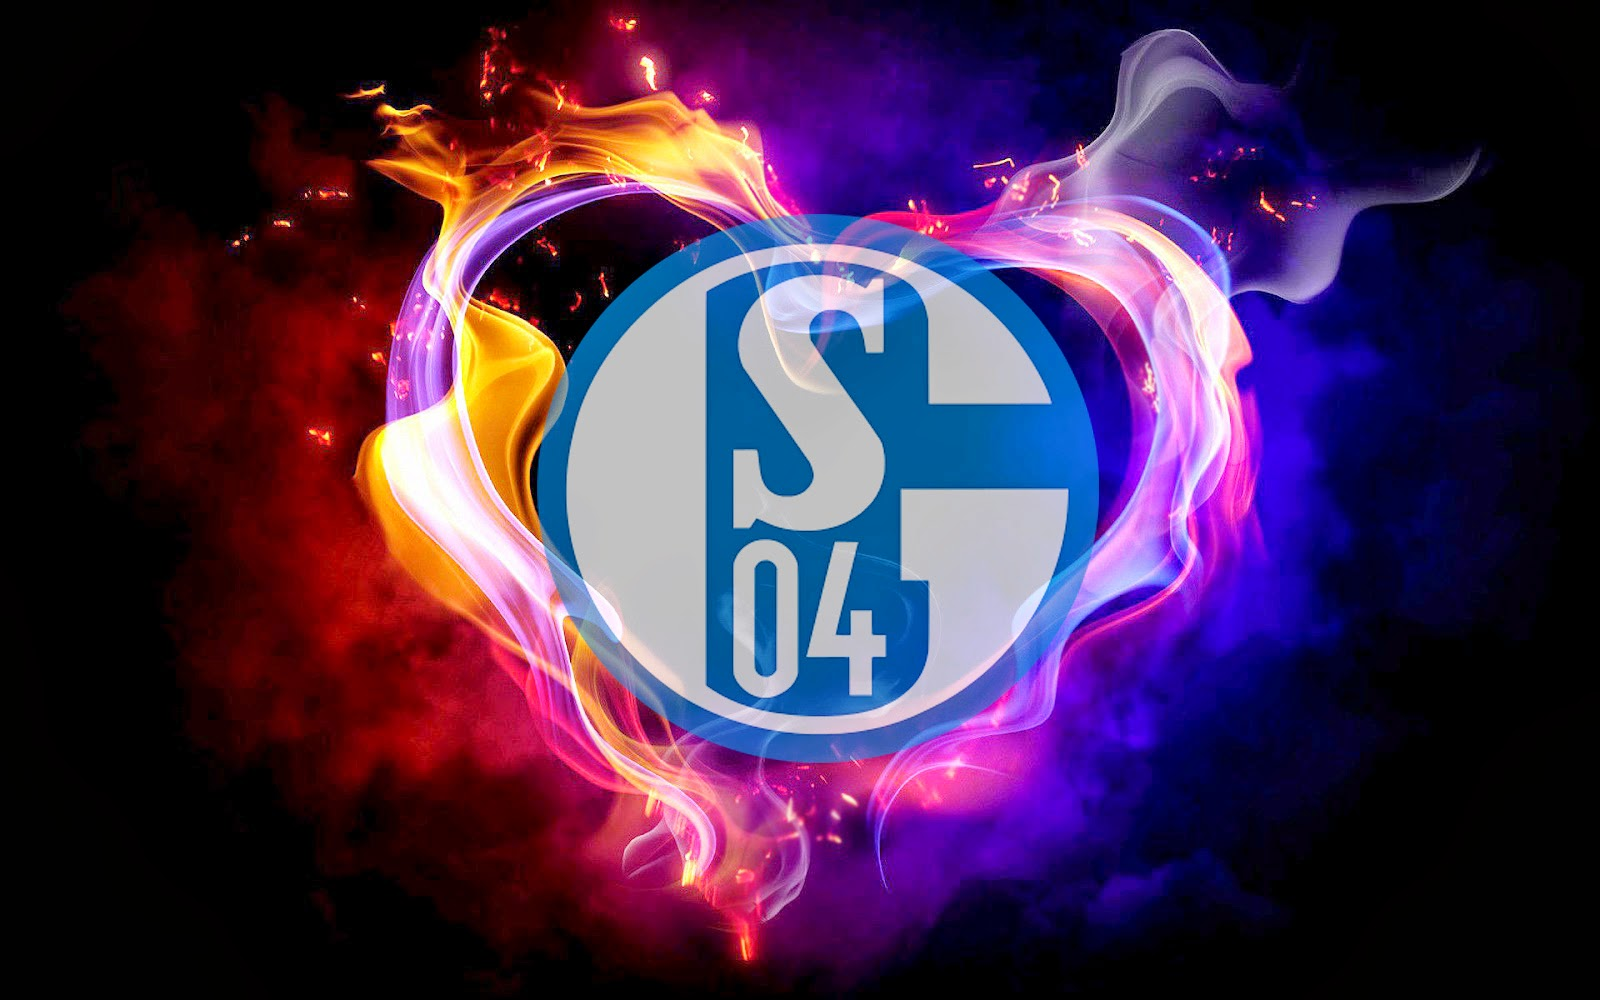 logo fc schalke 04 hintergrunde hd hintergrundbilder. Black Bedroom Furniture Sets. Home Design Ideas